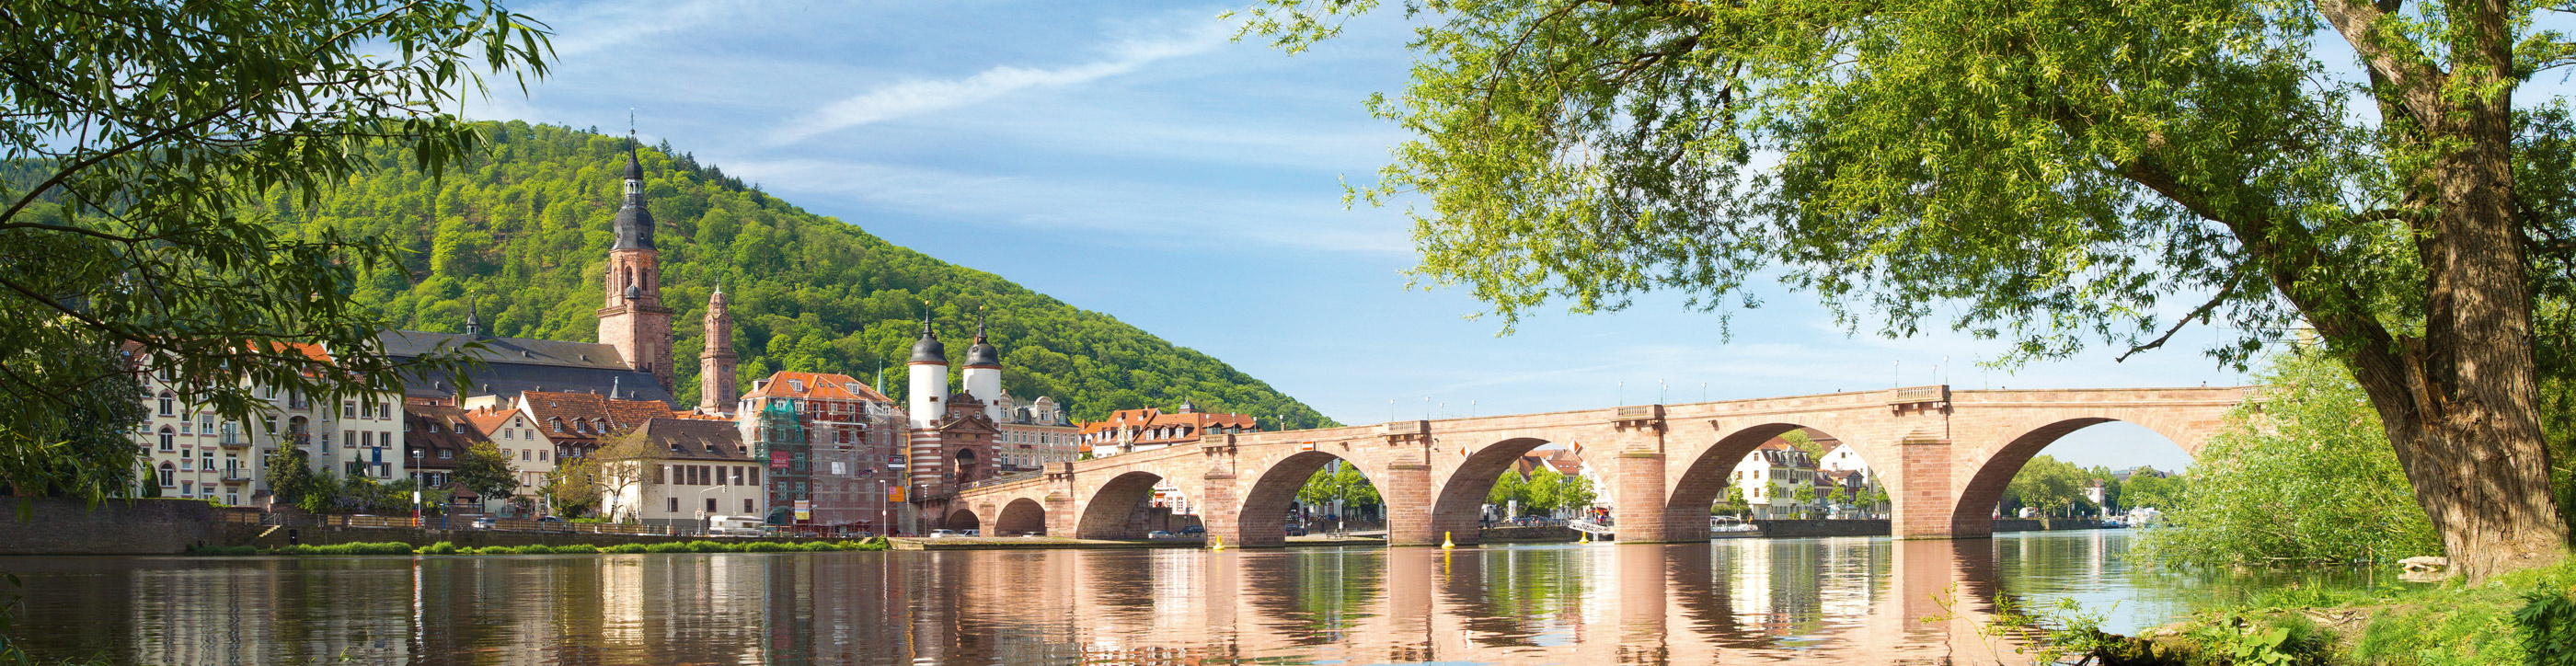 Bridge Heidelberg Germany